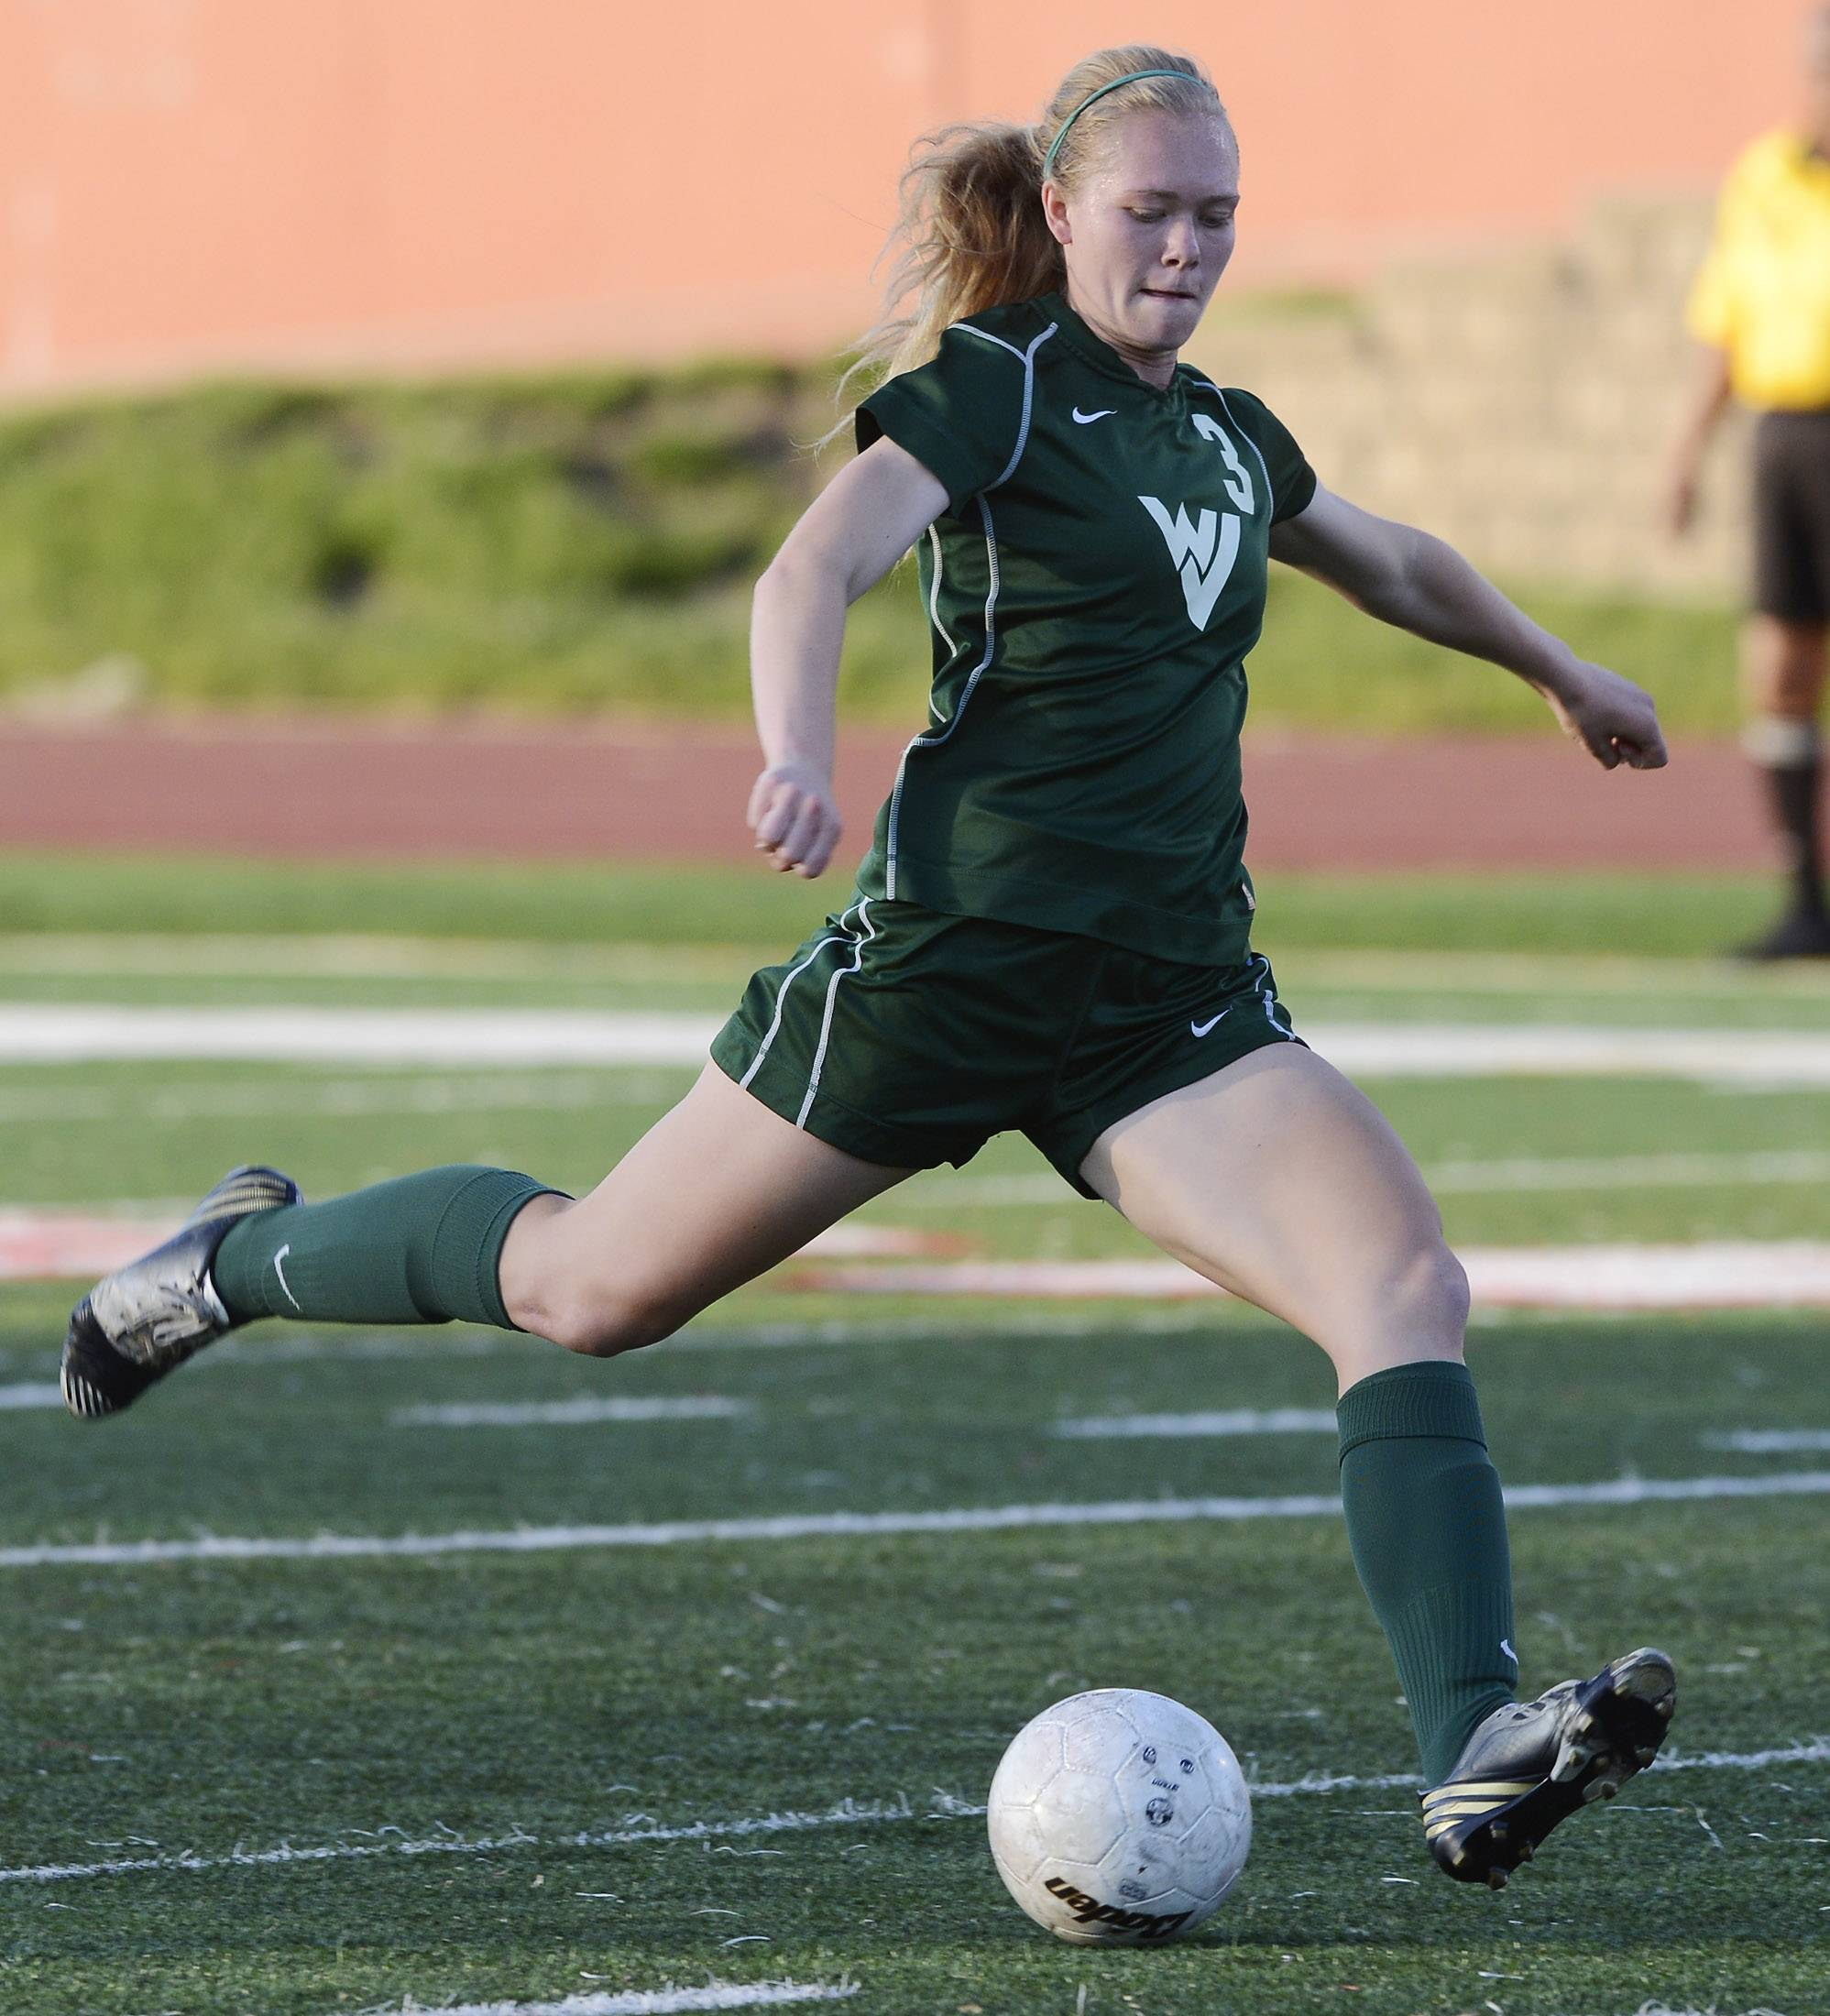 Waubonsie Valley's Morgan Kemerling takes a shot on goal during the girls soccer Class 3A state semifinal against New Trier at North Central College in Naperville Friday.